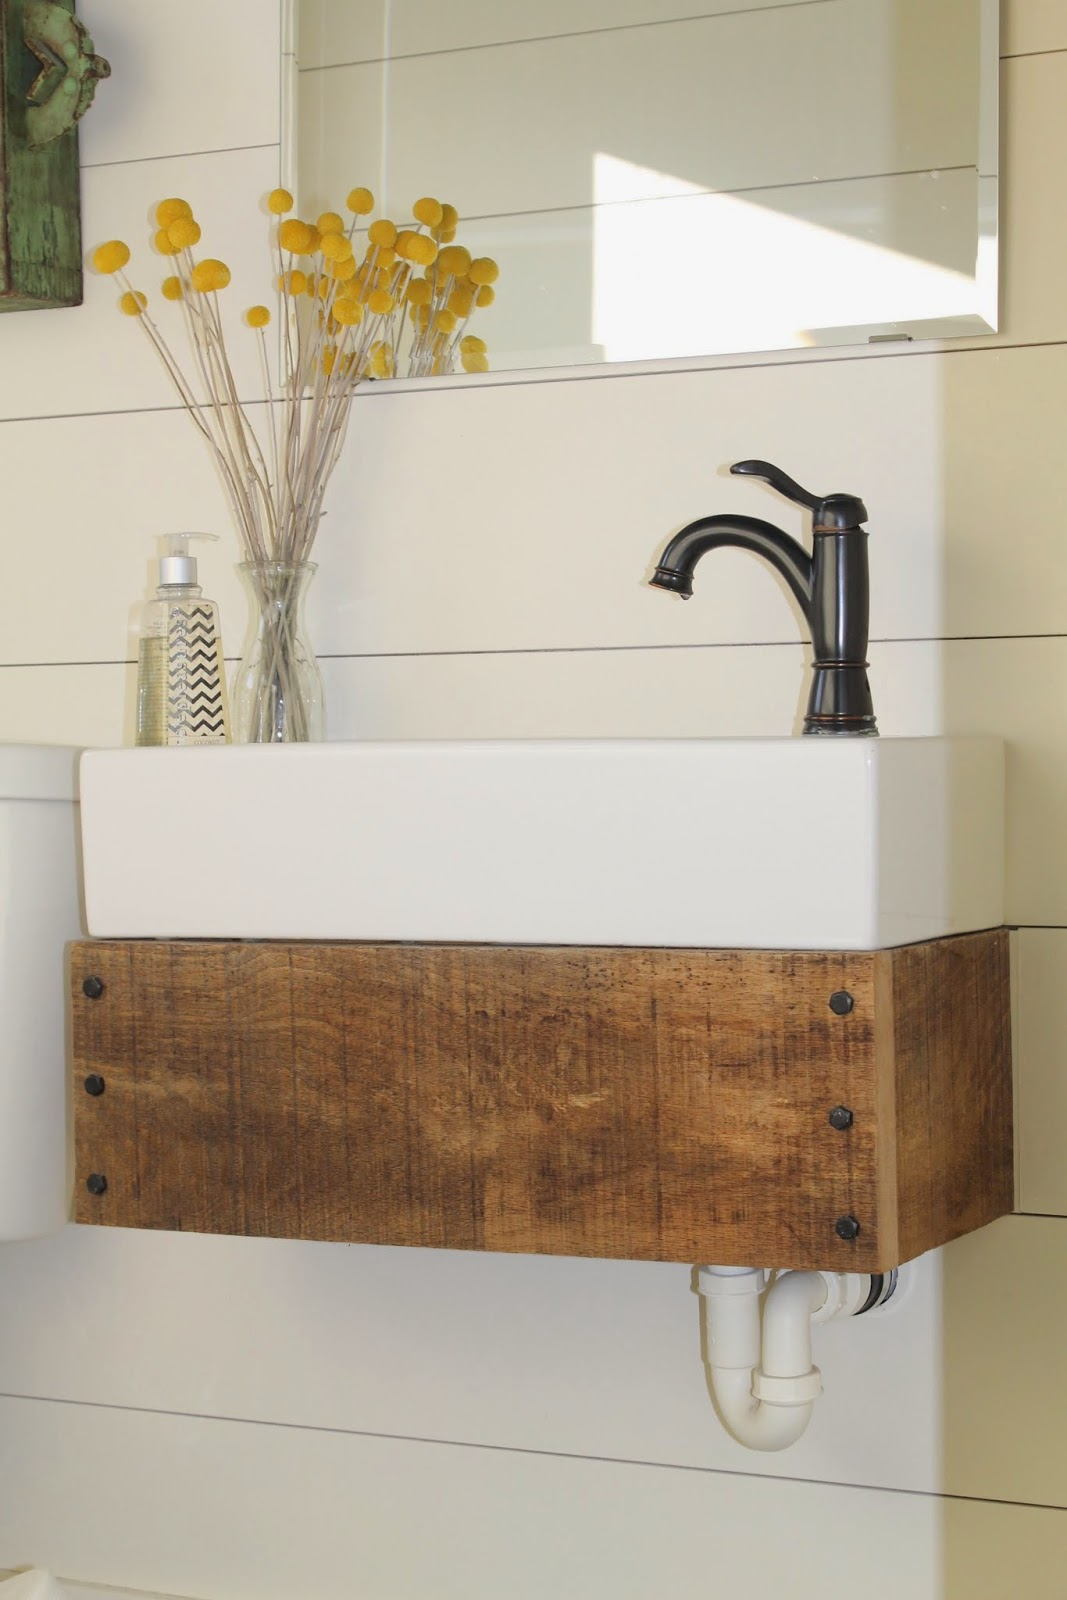 Nice DIY floating vanity from reclaimed wood Girl Meets Carpenter featured on Remodelaholic